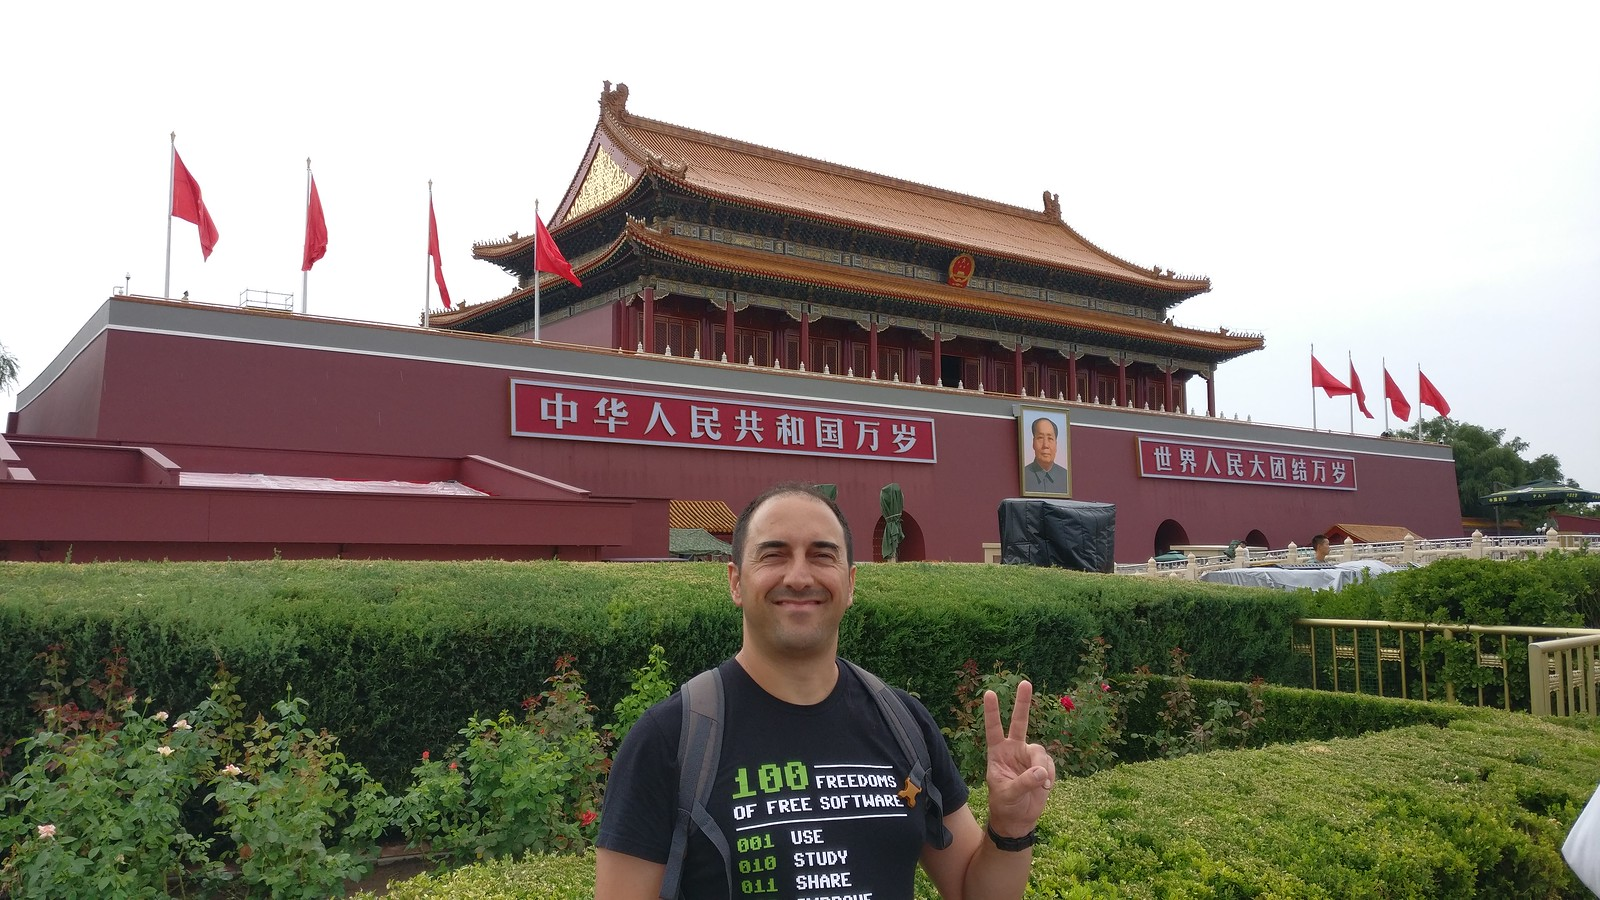 Quite excited to be in Tiananmen Square, and ready to discuss about Software Freedom